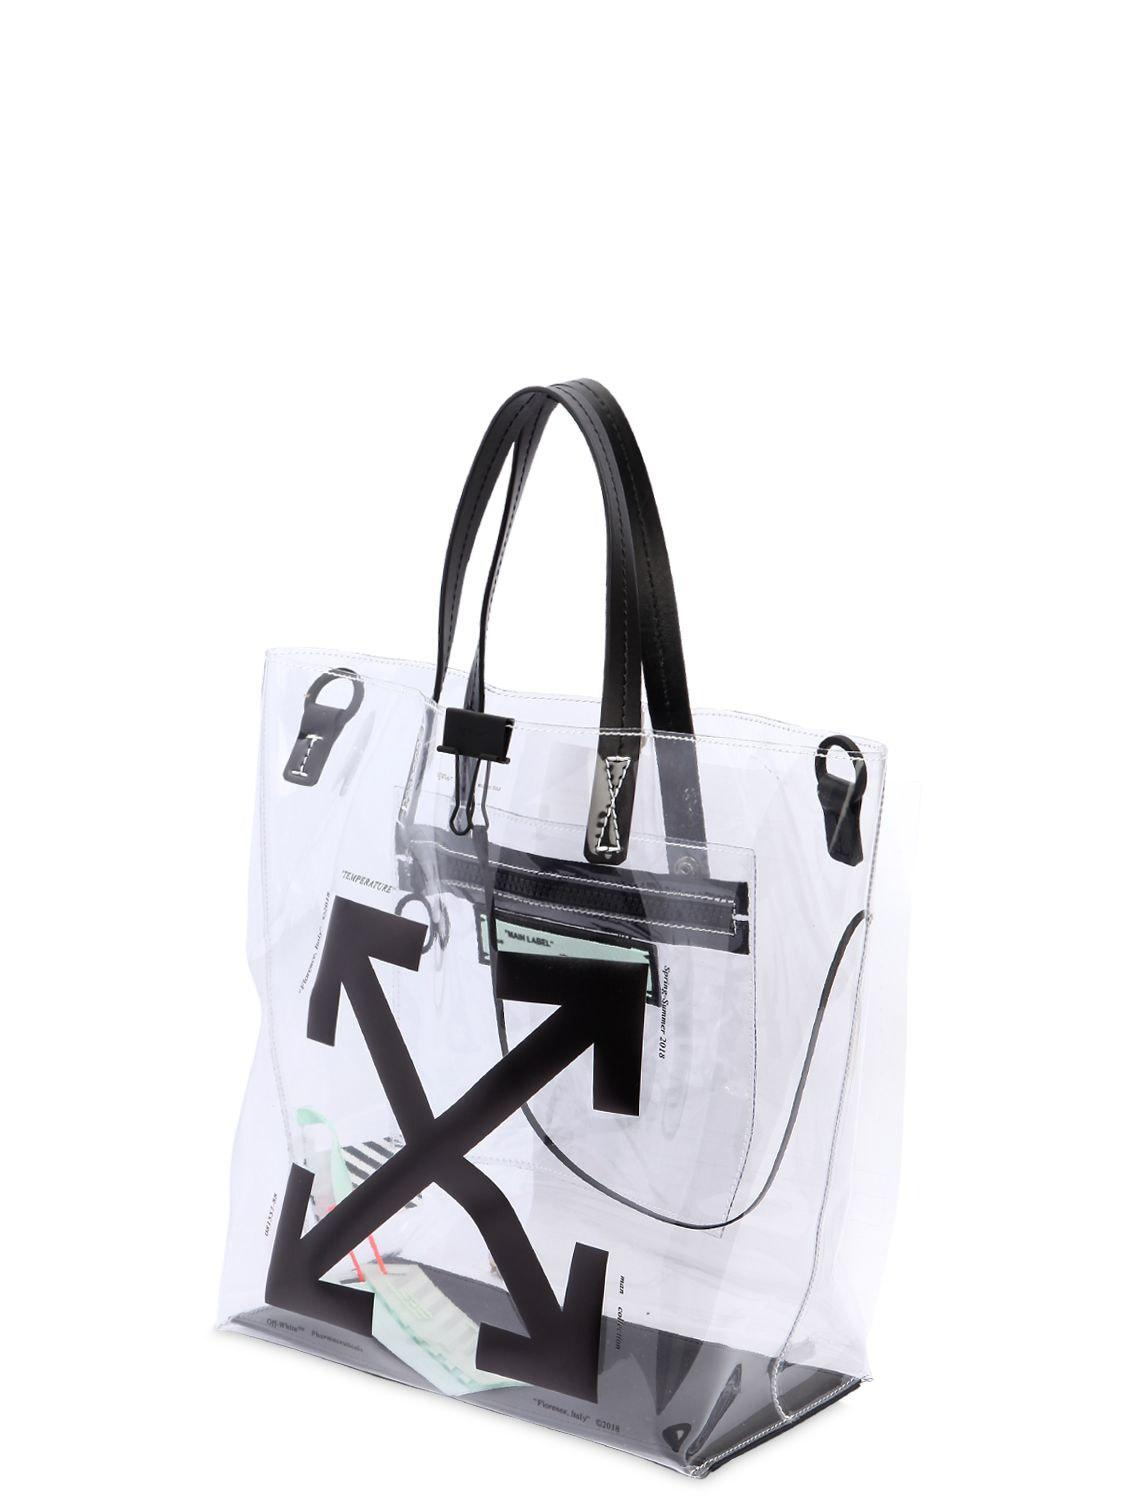 a0d3763b0 Filename: off-white-co-virgil-abloh-TRANSPARENT-Transparent-Pvc-Tote-Bag .jpeg